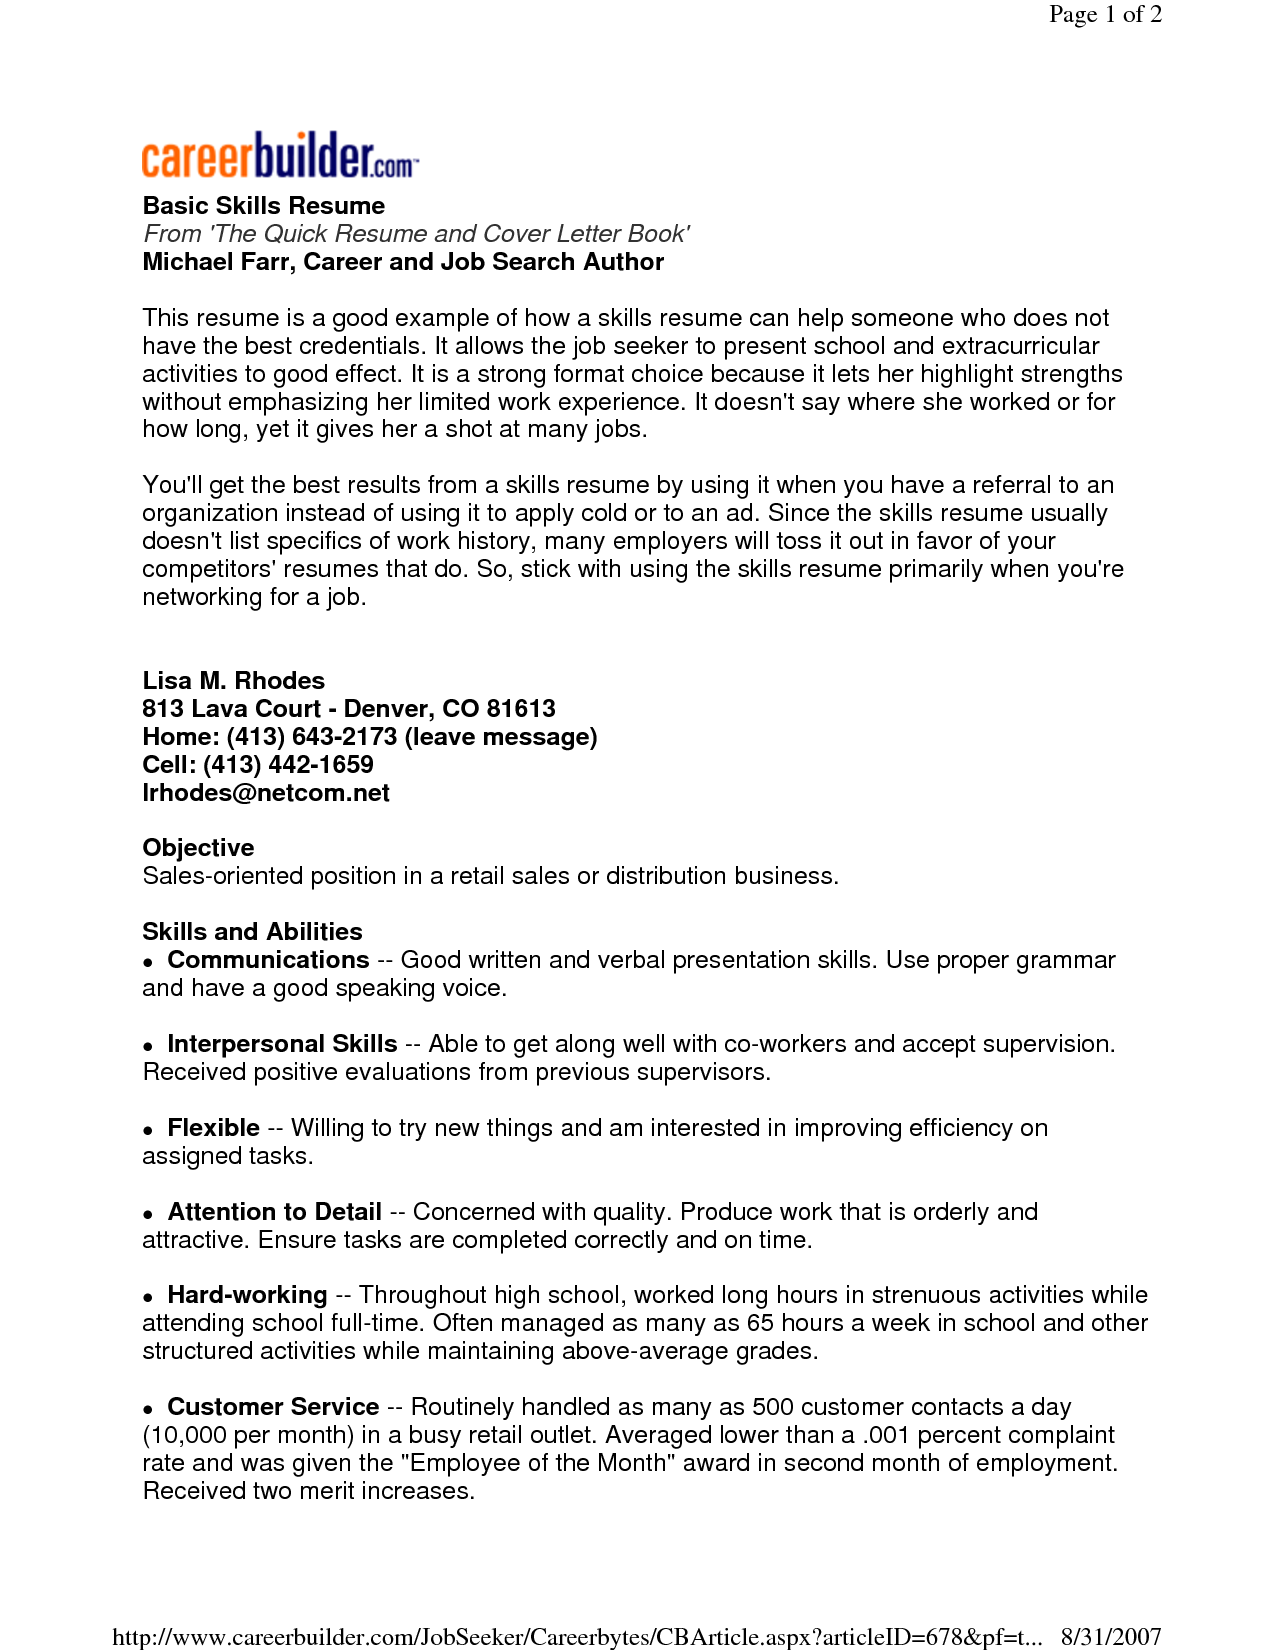 resume example simple best images about basic resume pinterest high school best images about basic resume